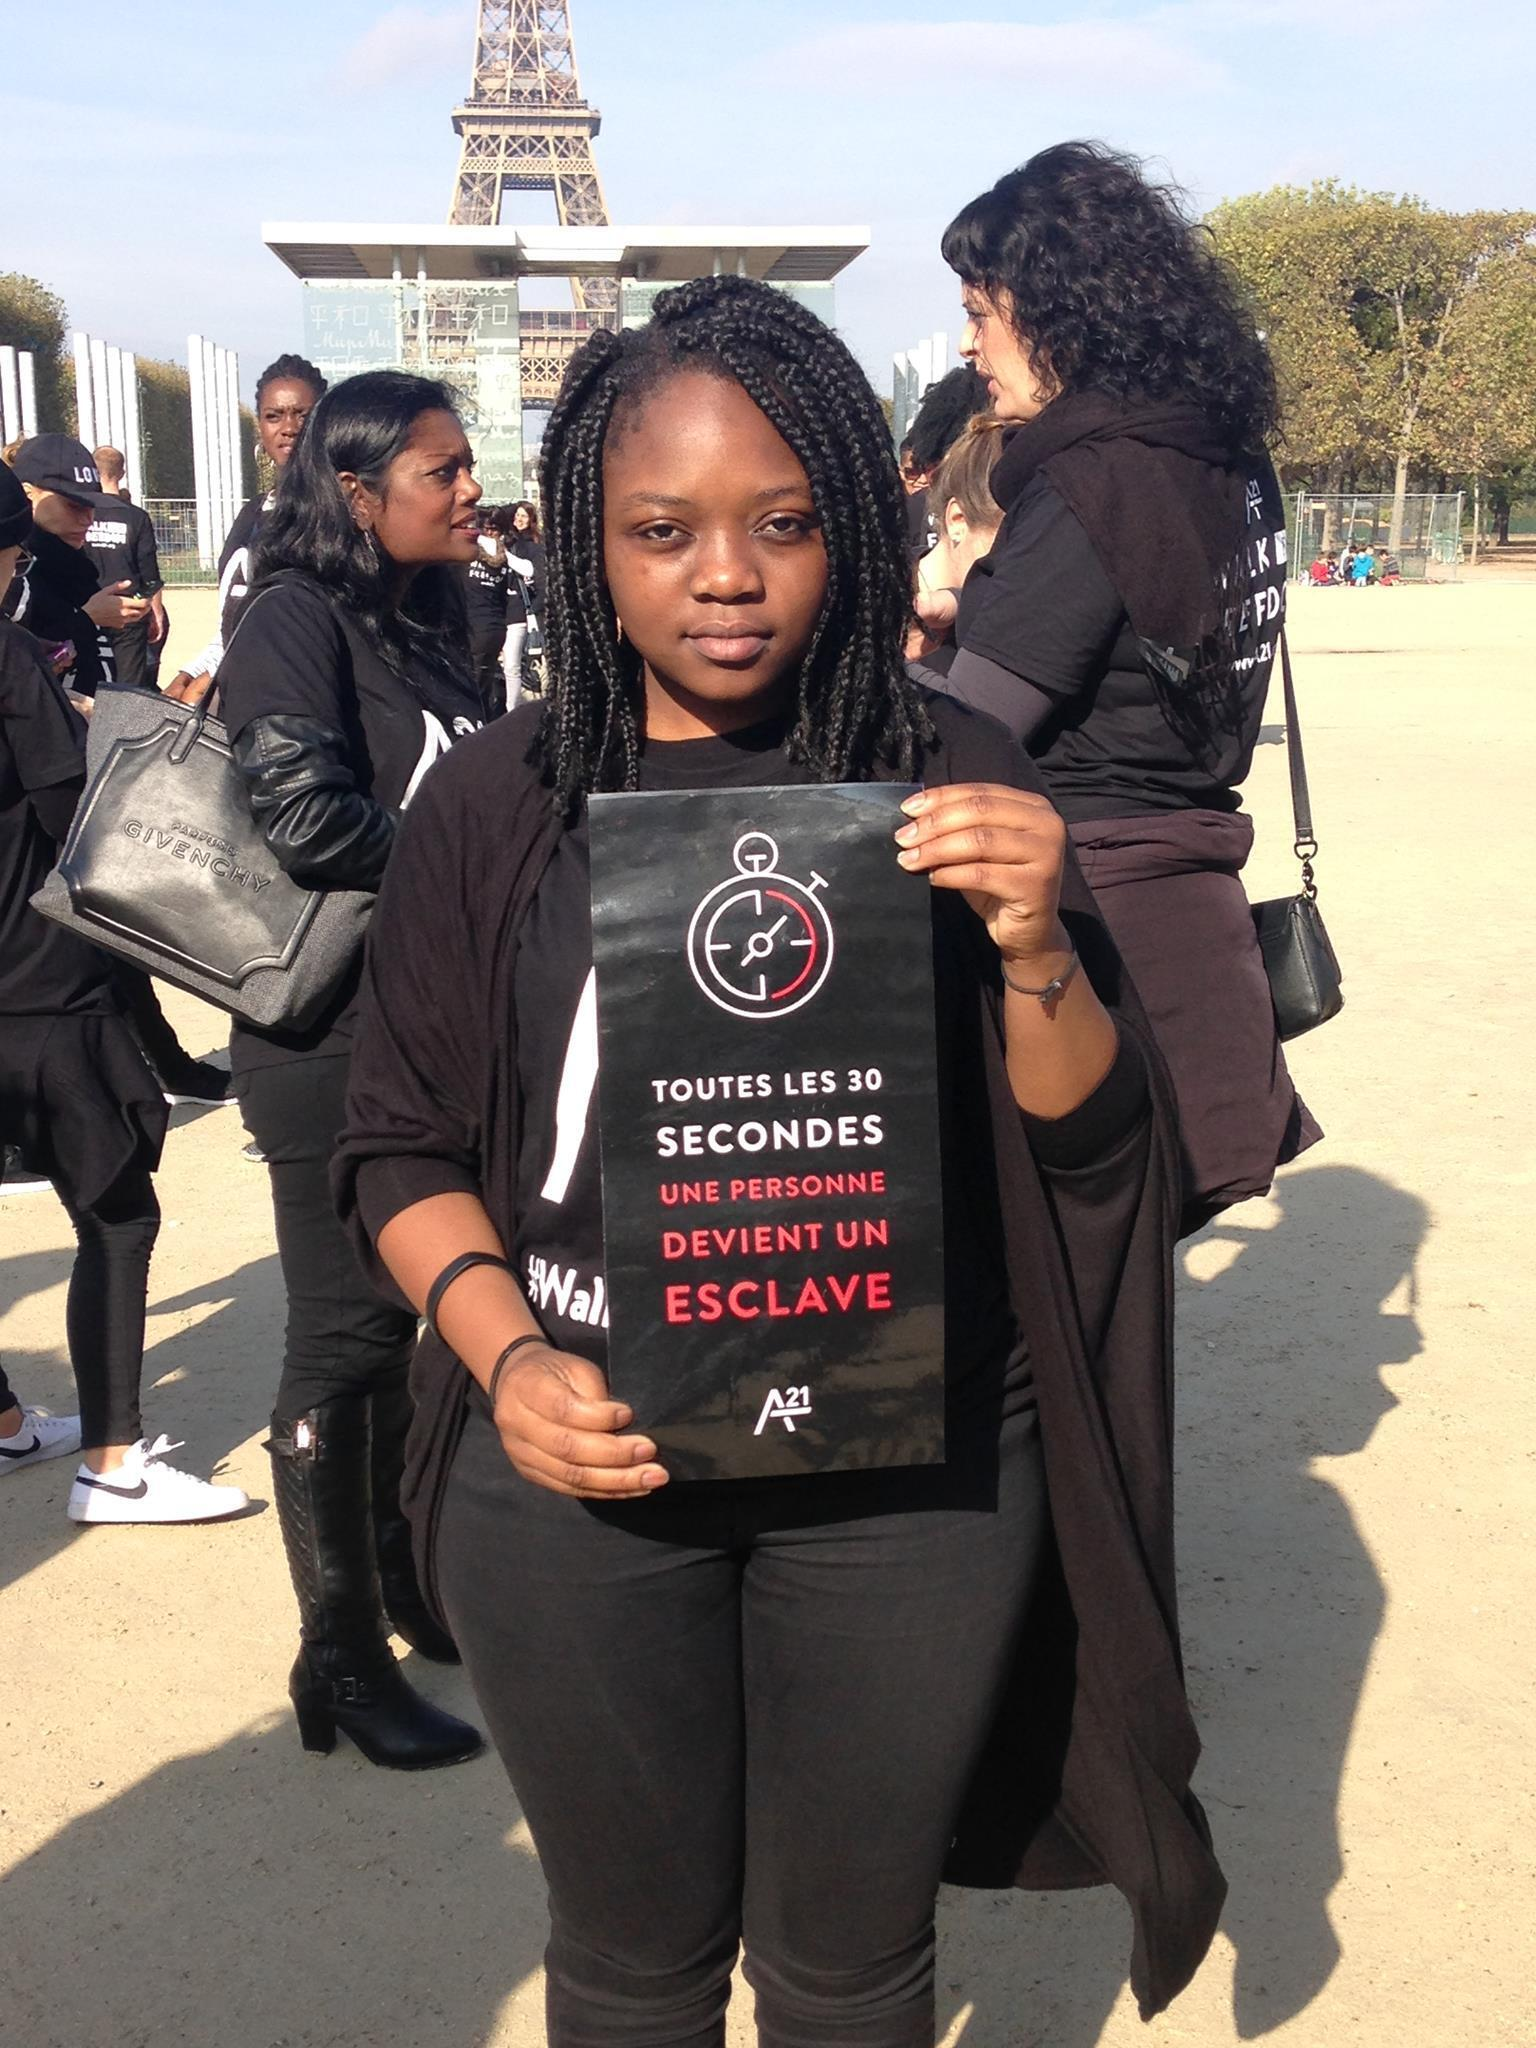 Activists dressed in black stage a silent march in Paris, 15 October to shine spotlight on human trafficking.